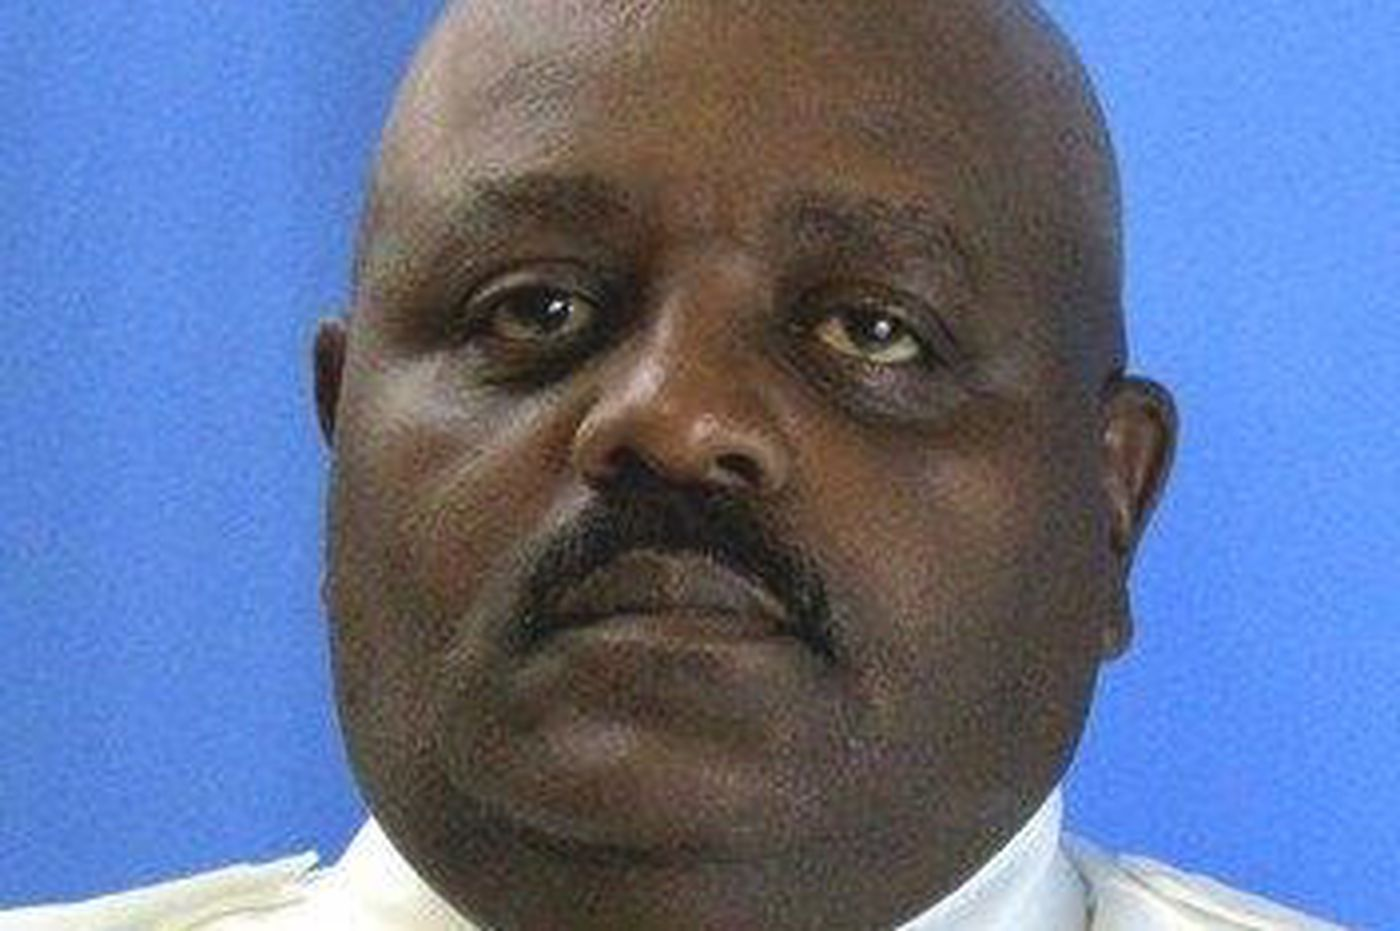 Philly firefighter, 62, dies after training exercise injury